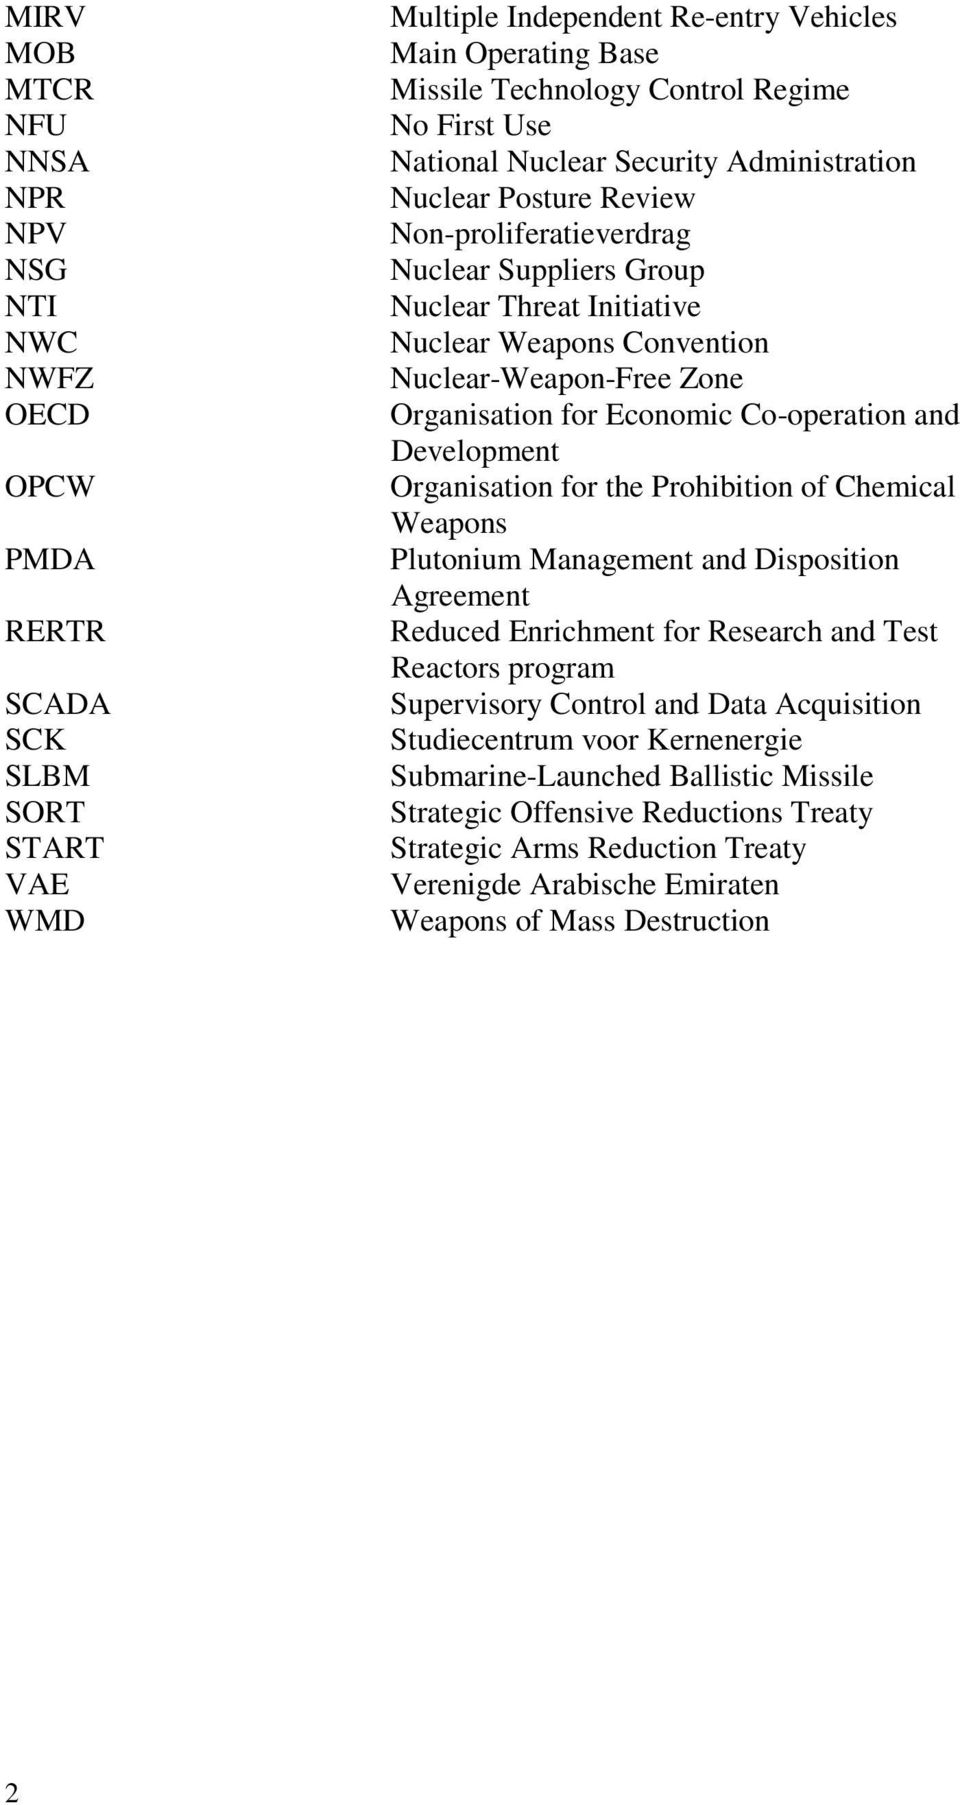 Organisation for Economic Co-operation and Development Organisation for the Prohibition of Chemical Weapons Plutonium Management and Disposition Agreement Reduced Enrichment for Research and Test